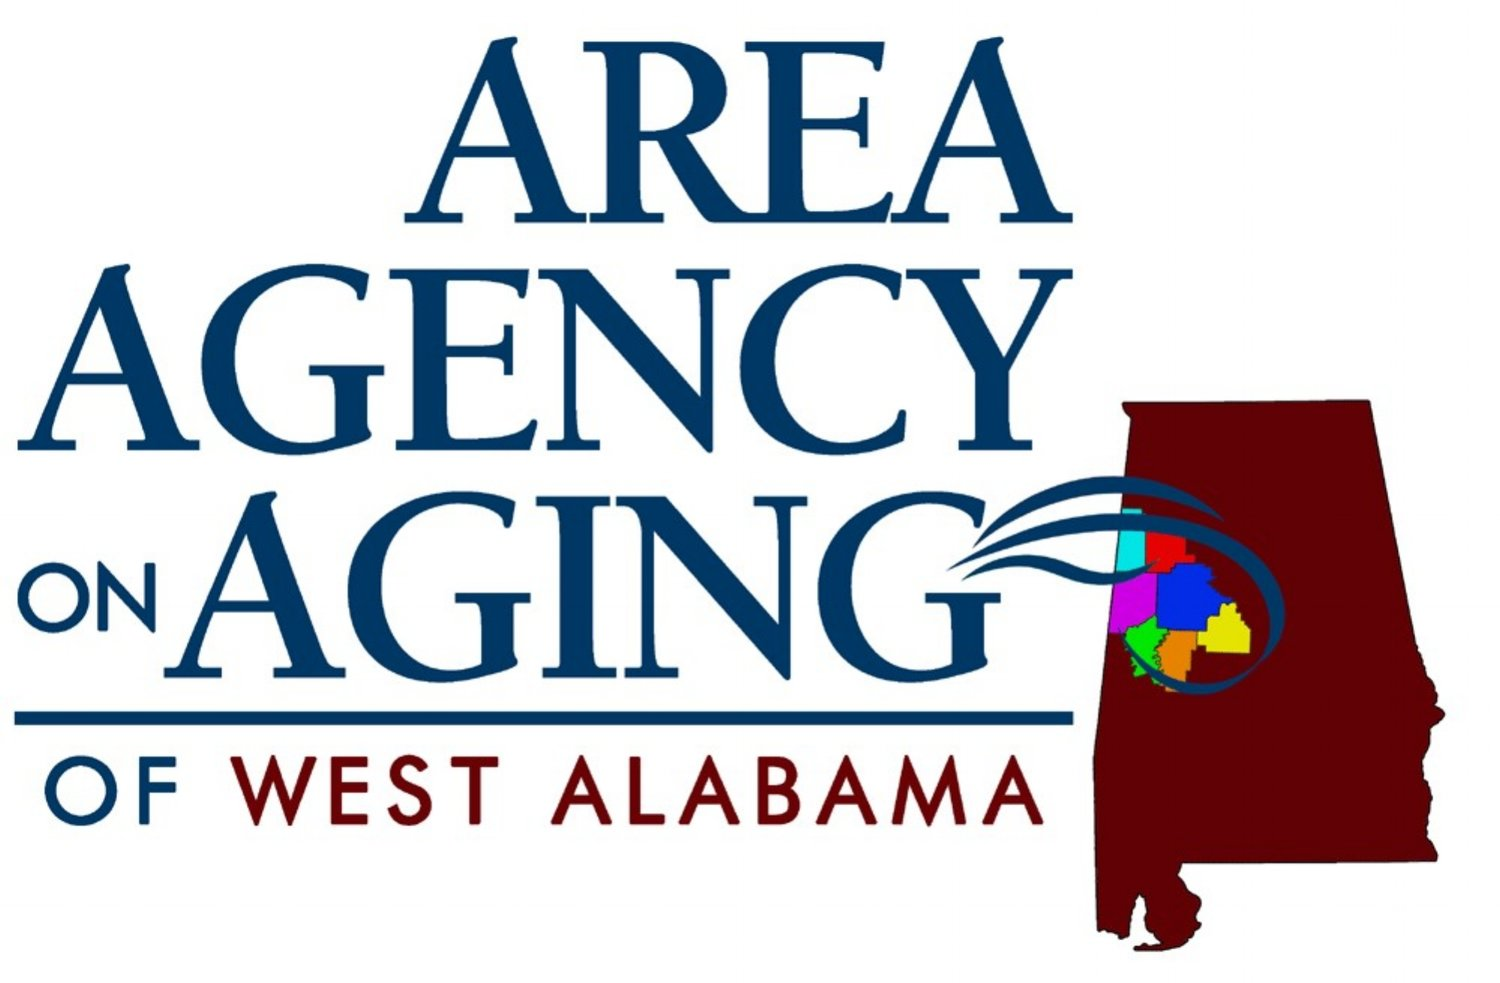 Alabama hale county akron - Area Agency On Aging Of West Alabama